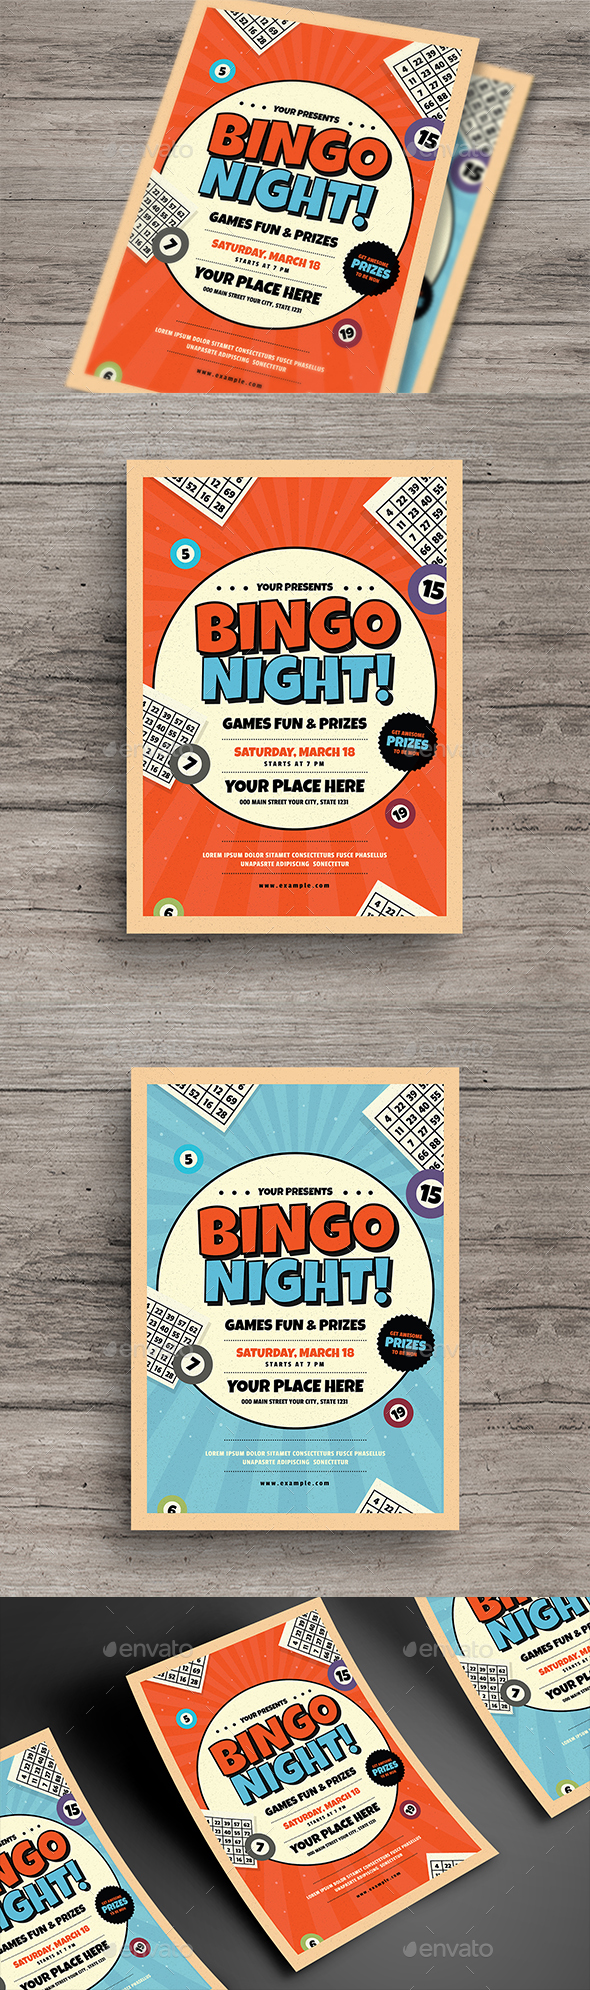 Bingo Night Event Flyer - Miscellaneous Events